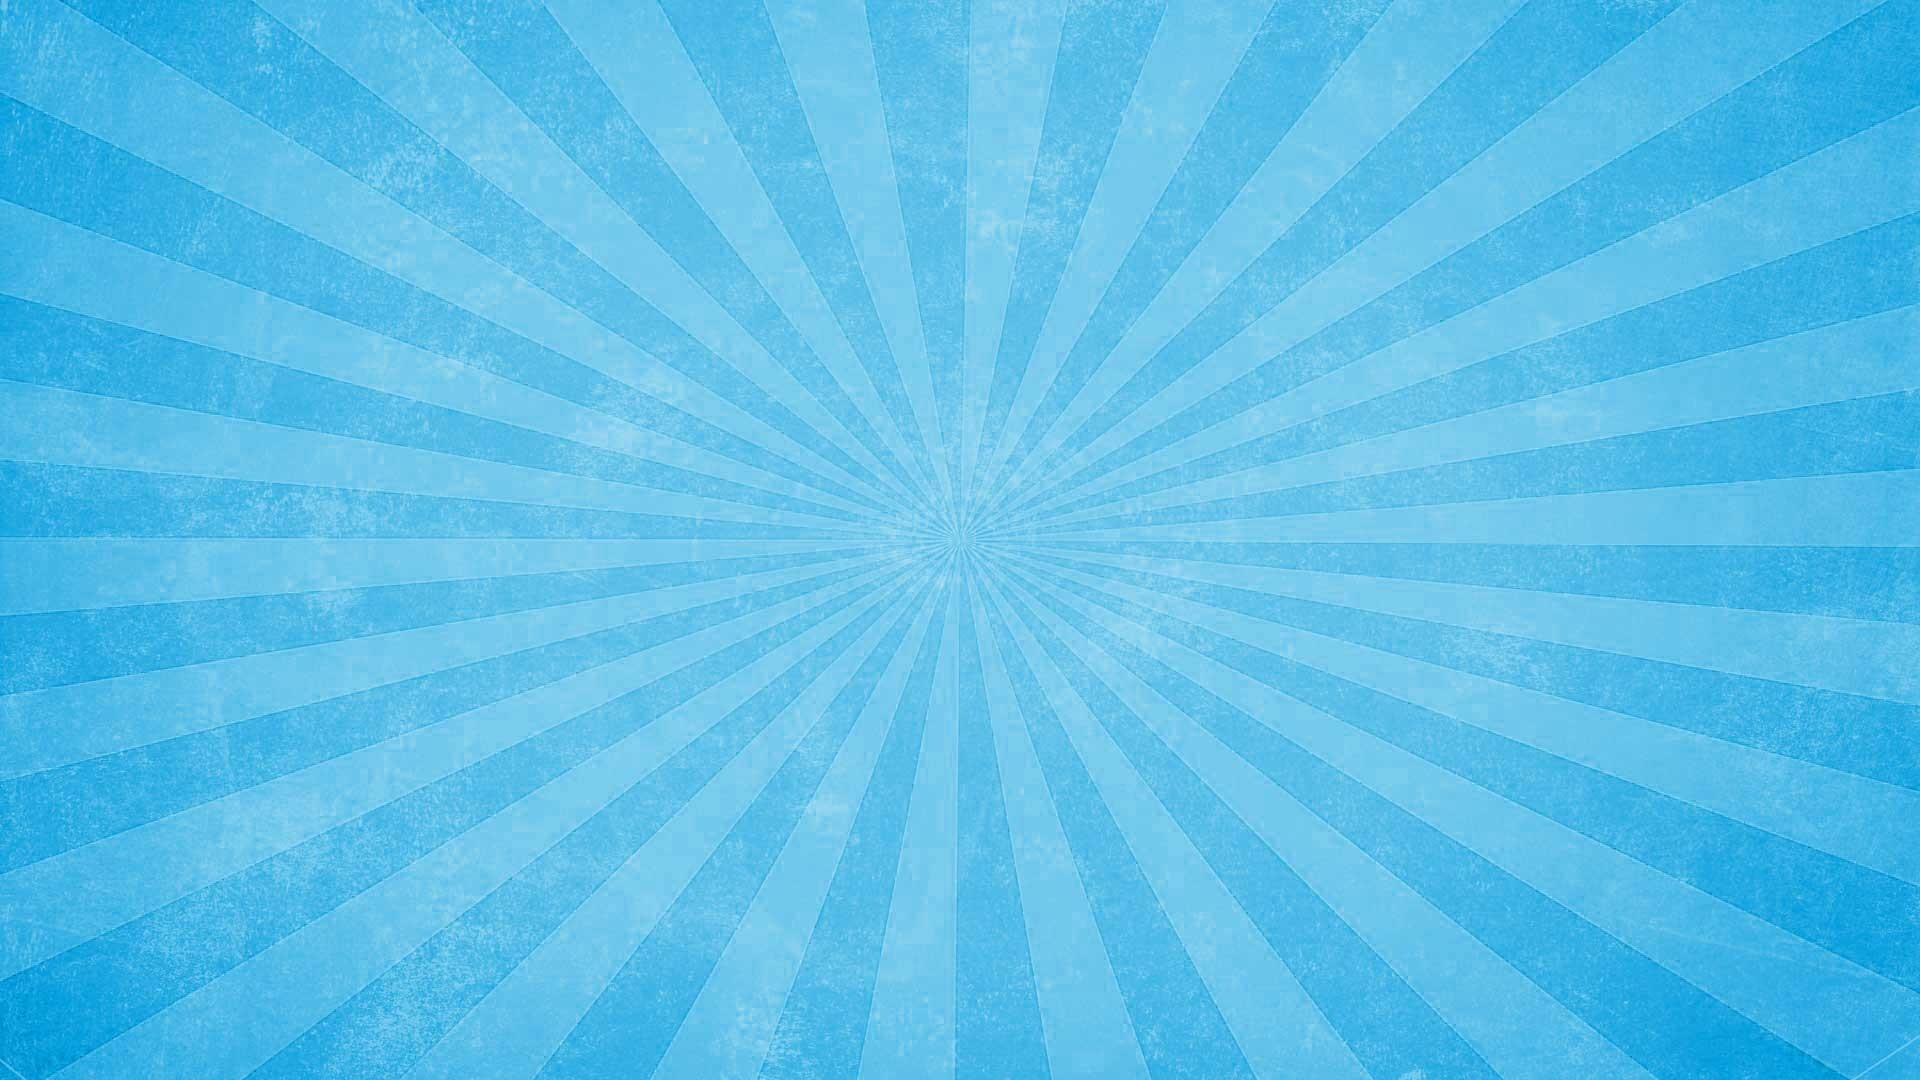 Starburst Background 183 ① Download Free Hd Backgrounds For